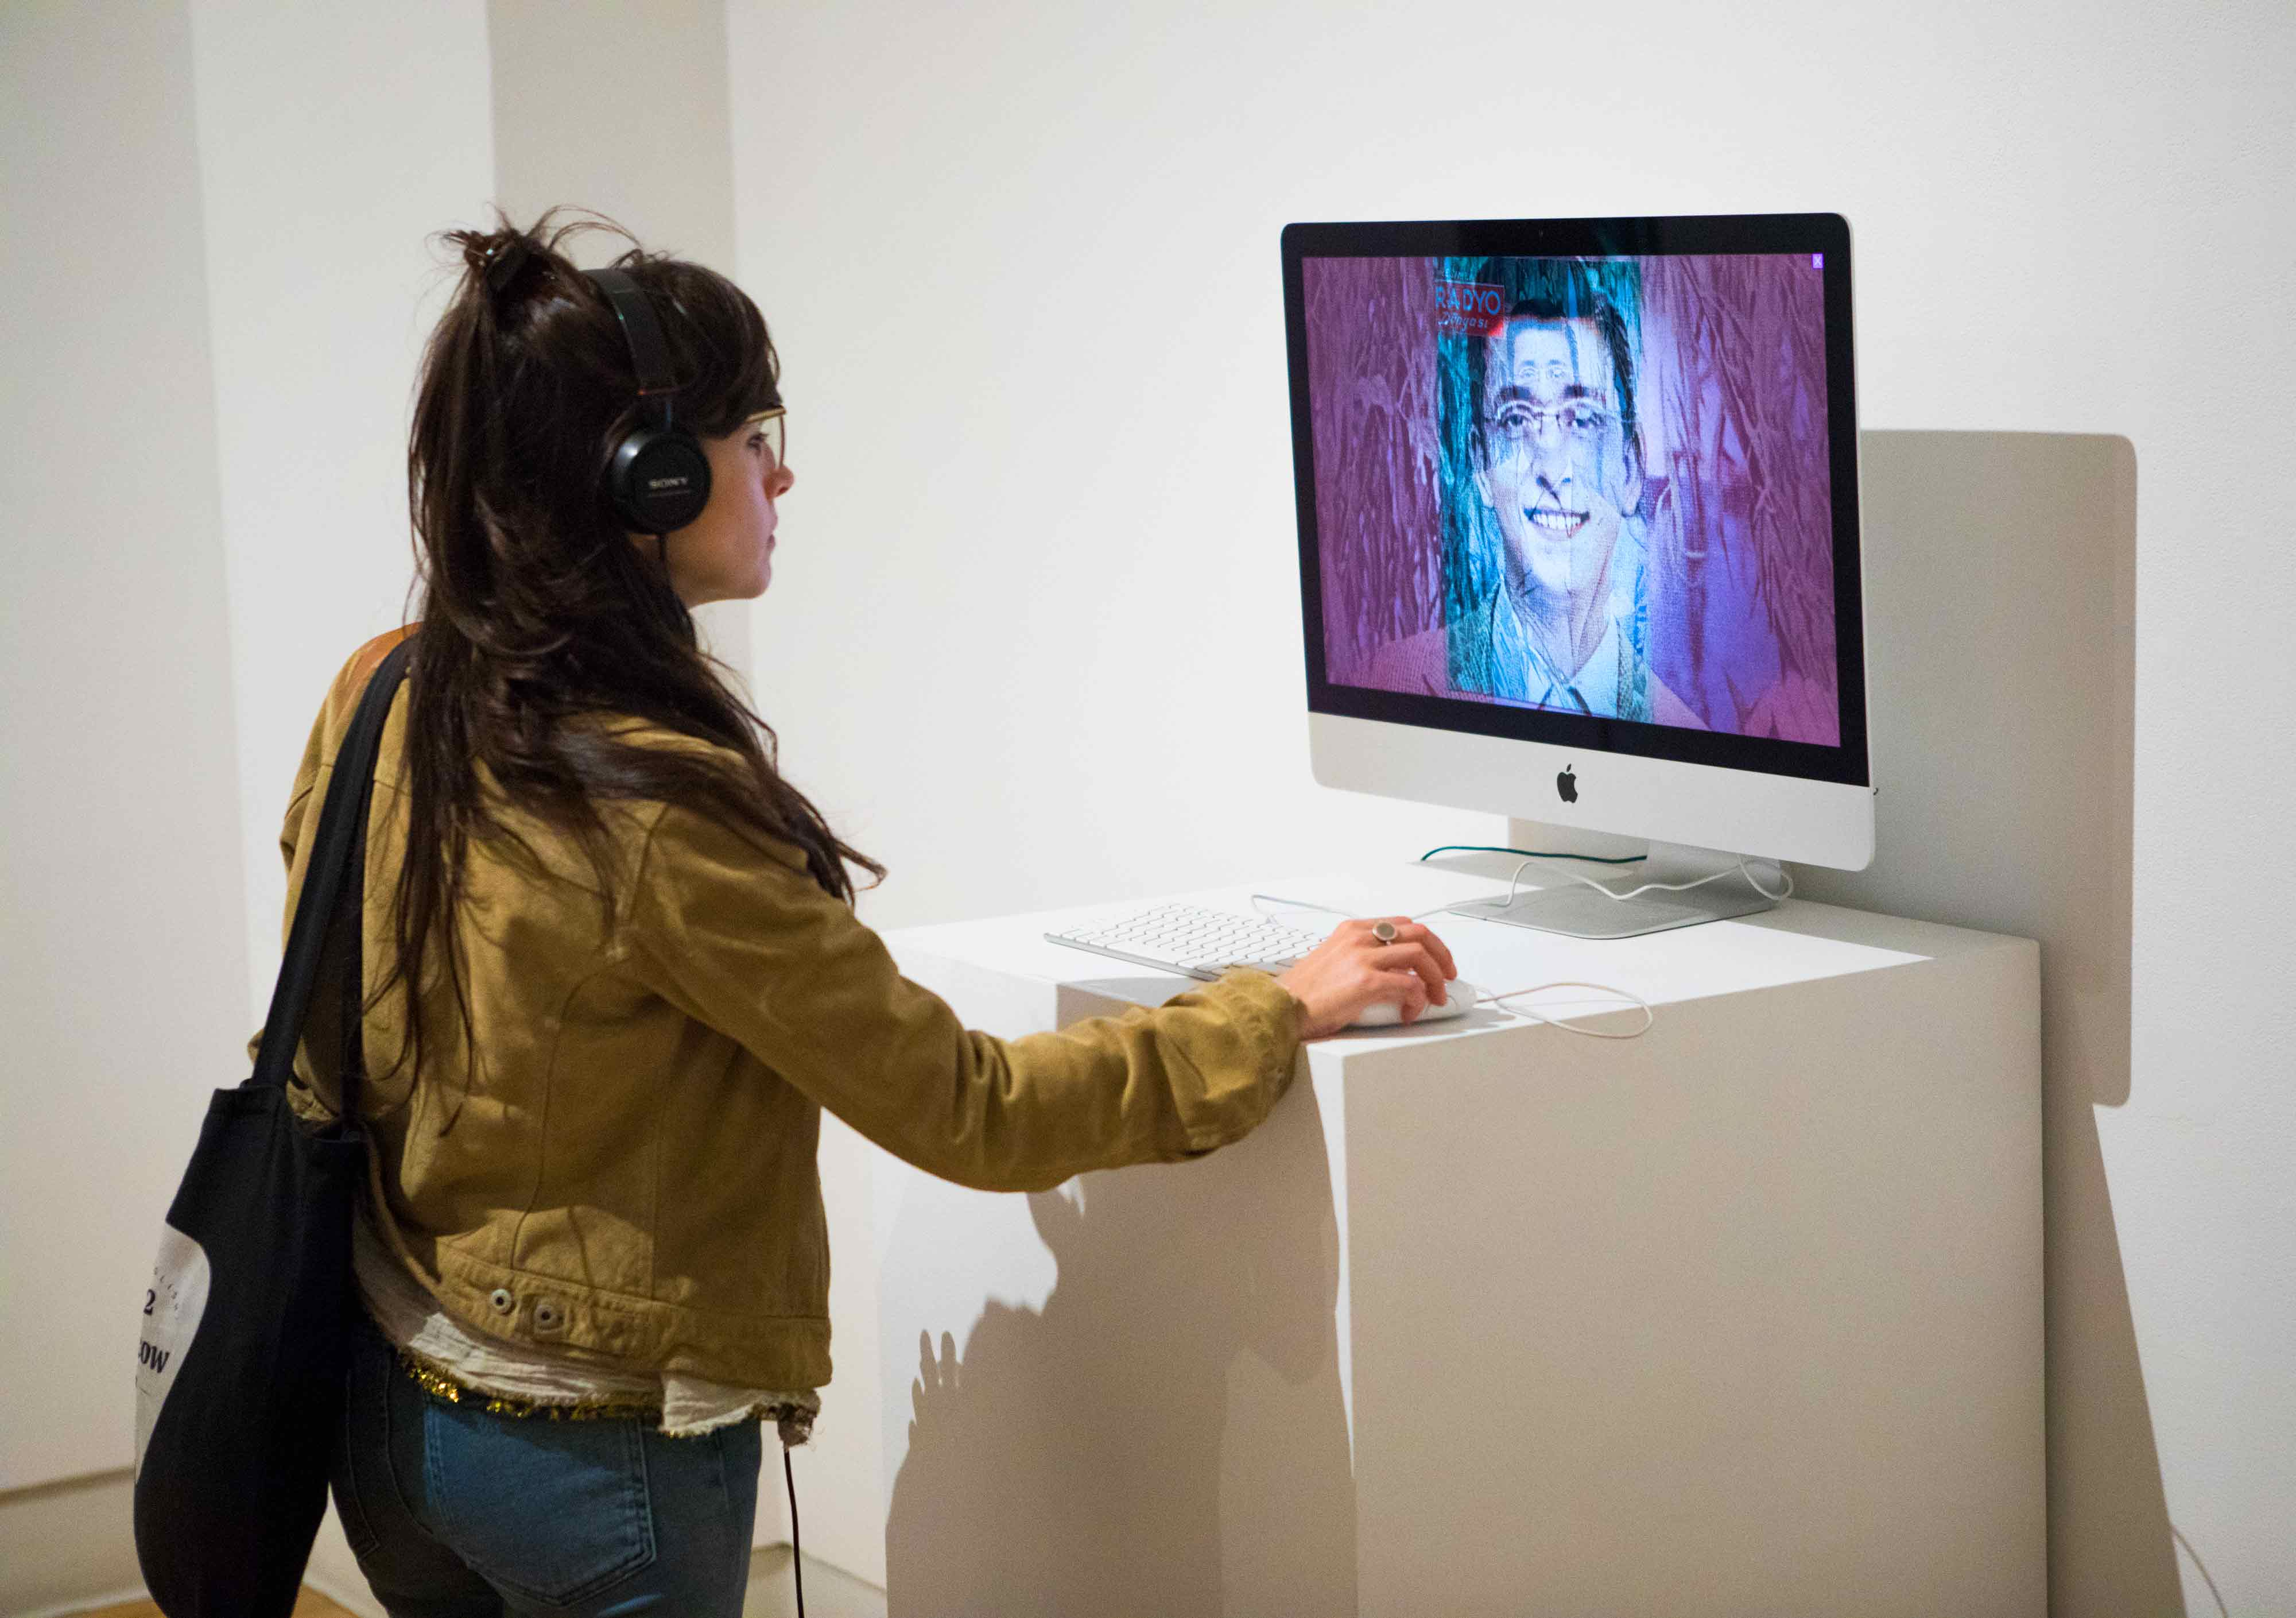 A young woman watching a video about another person.